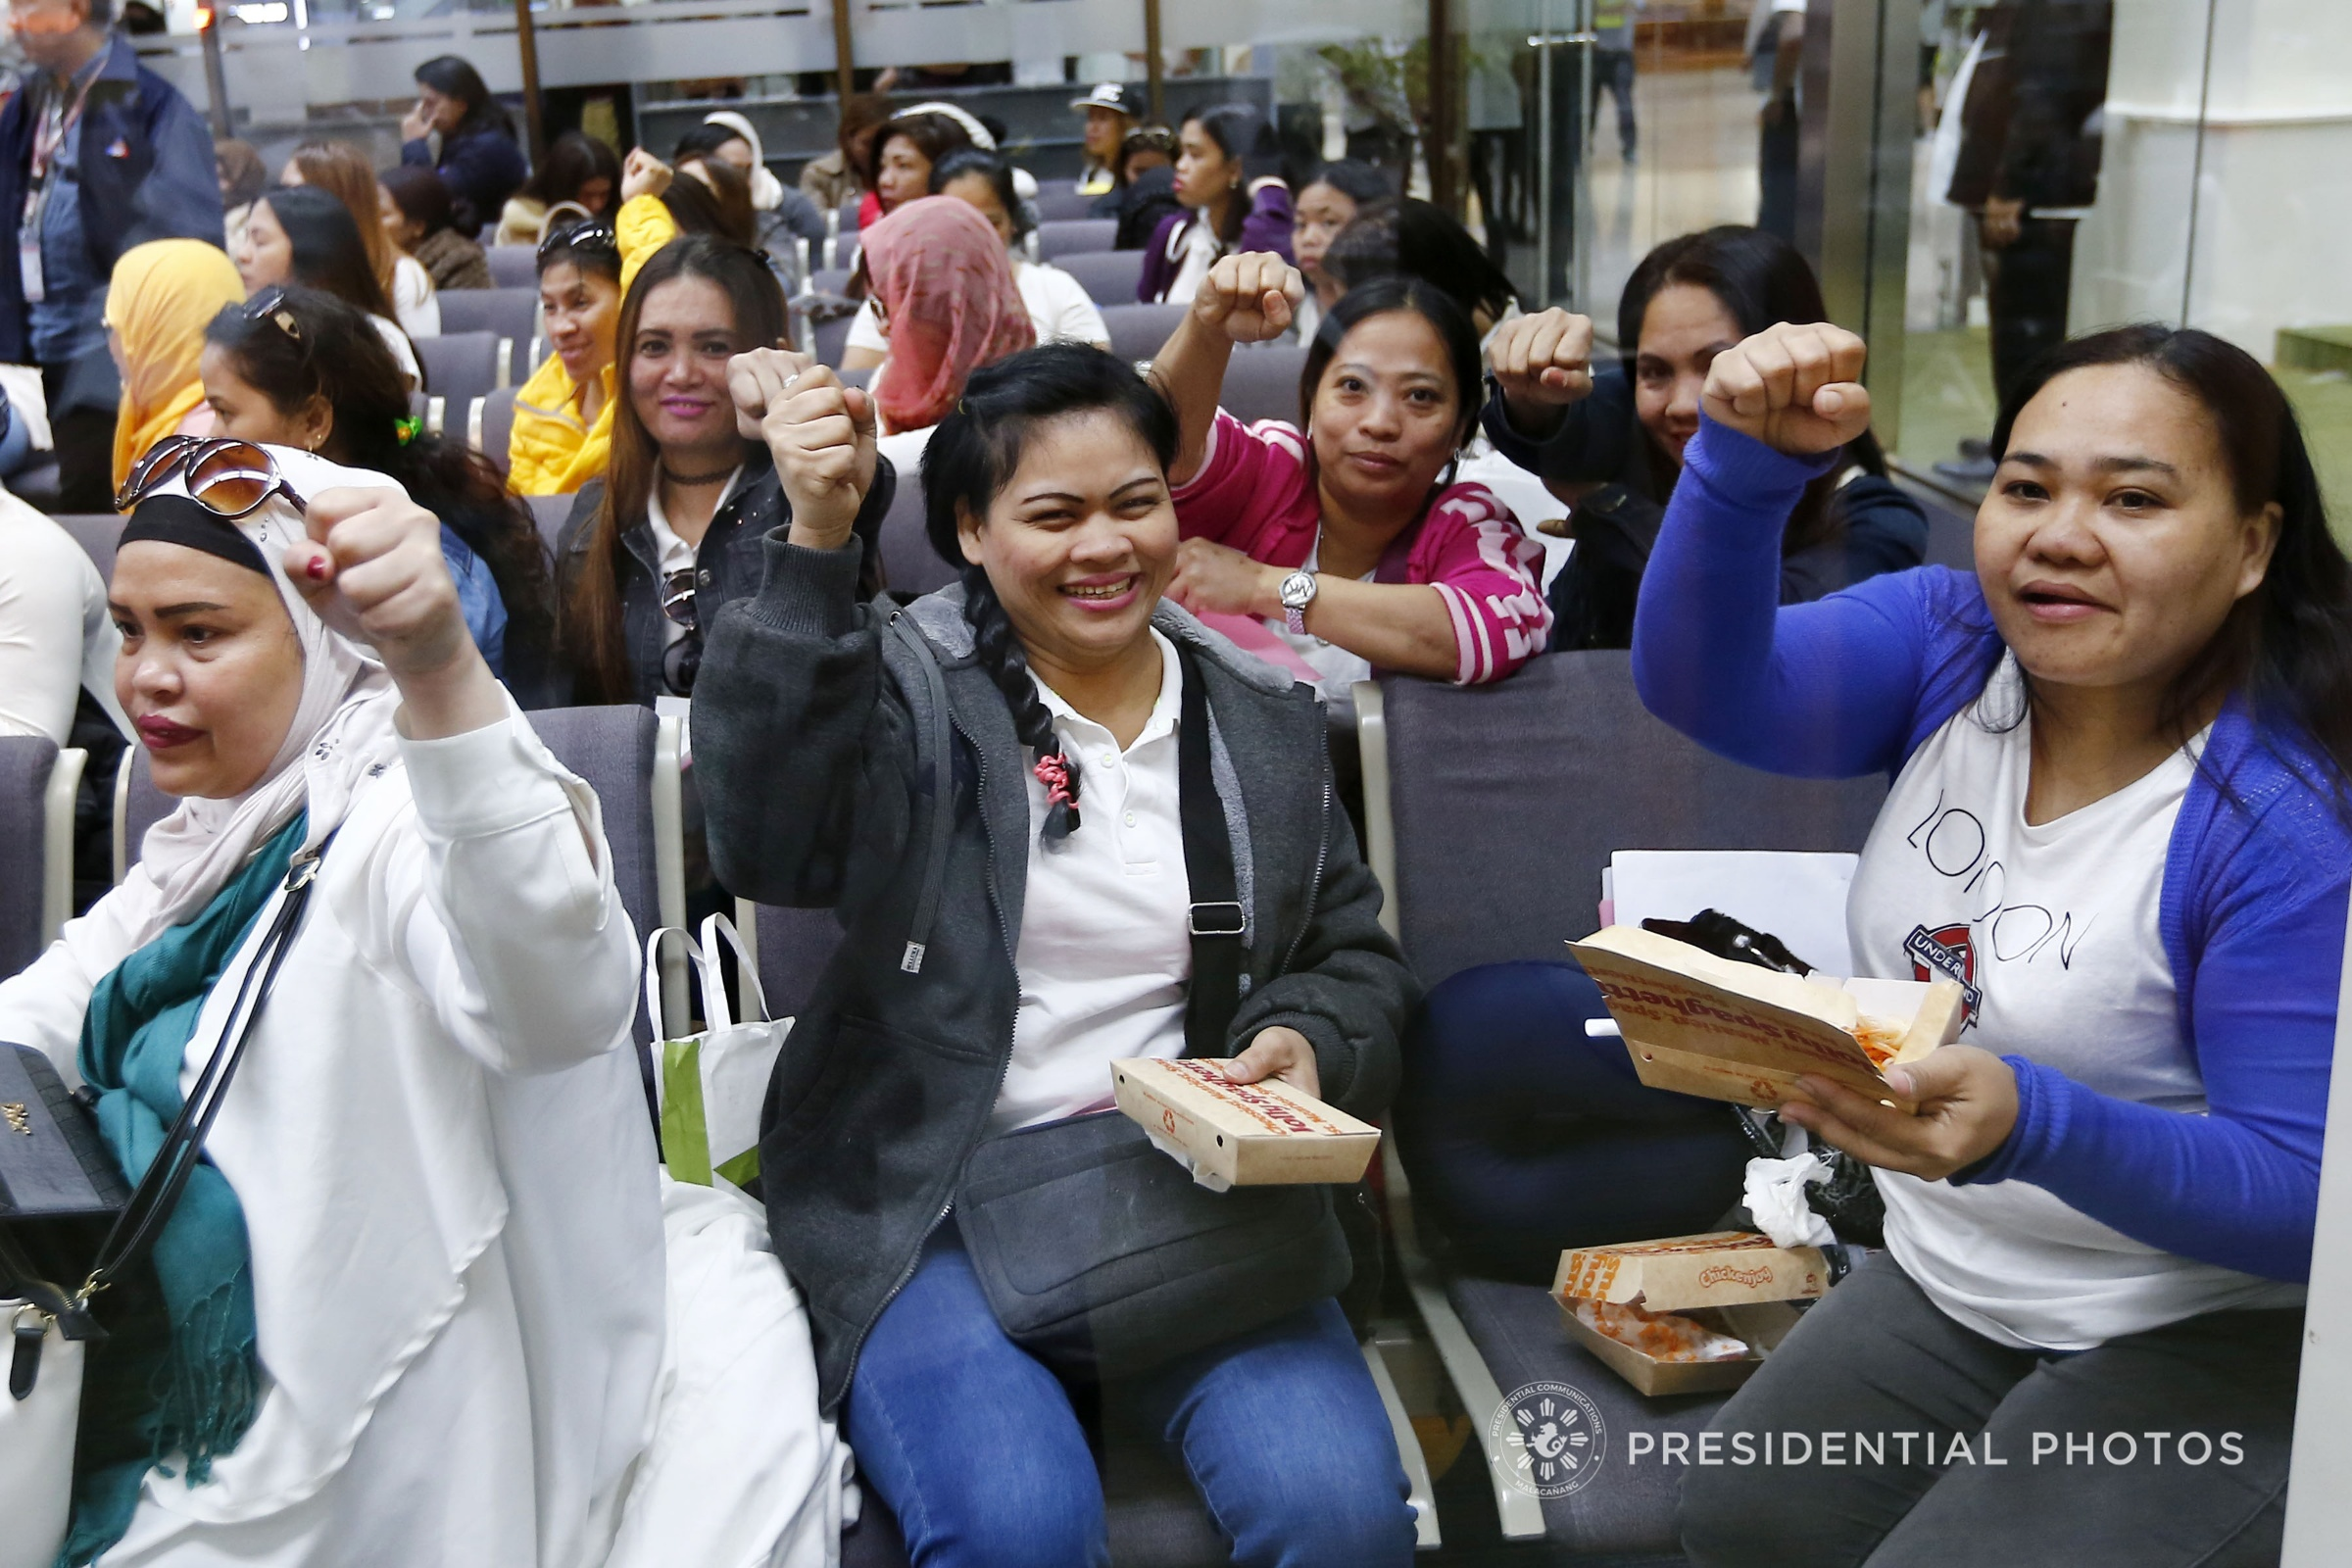 REPATRIATED OFWs. Overseas Filipino Worker (OFW) amnesty availees from Kuwait strike President Rodrigo R. Duterte's signature pose as they return to the country. Duterte welcomed the returning OFWs at the Ninoy Aquino International Airport in Pasay City on Feb. 12, 2018. (Alfred Frias/Presidential Photo)